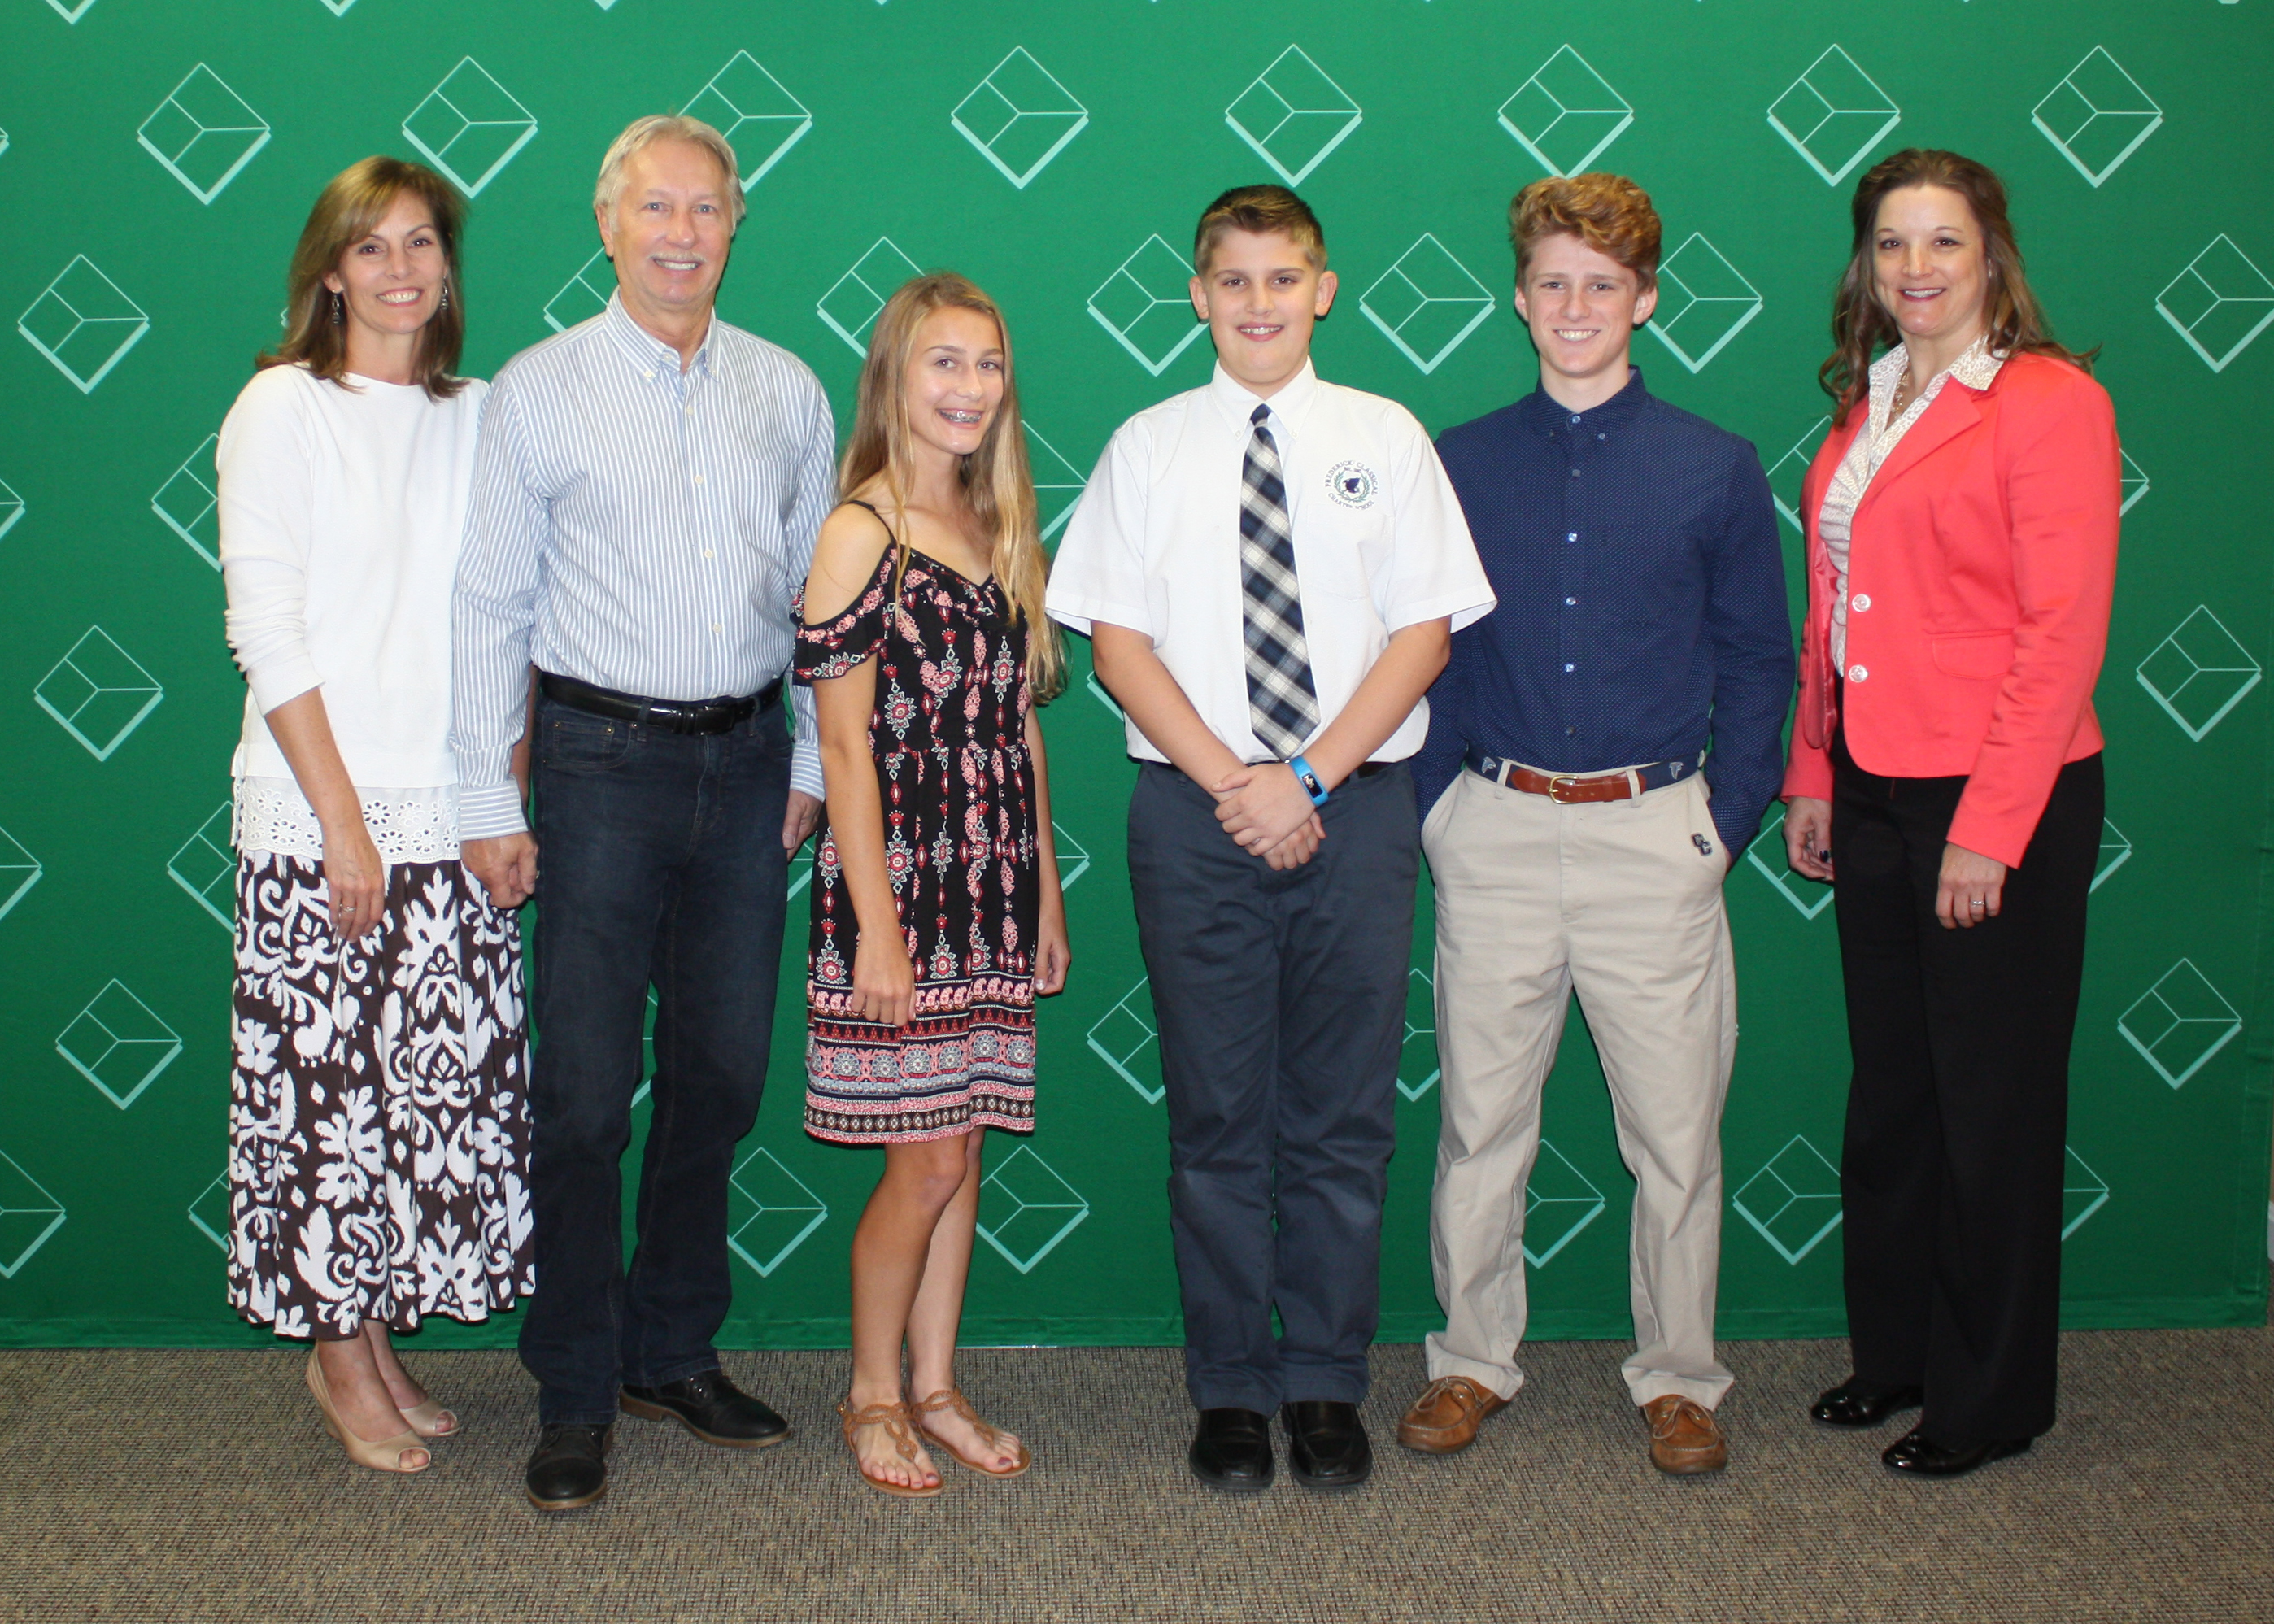 Athletic Scholarships Presented from Community Foundation Dustin and Courtney Muse Fund